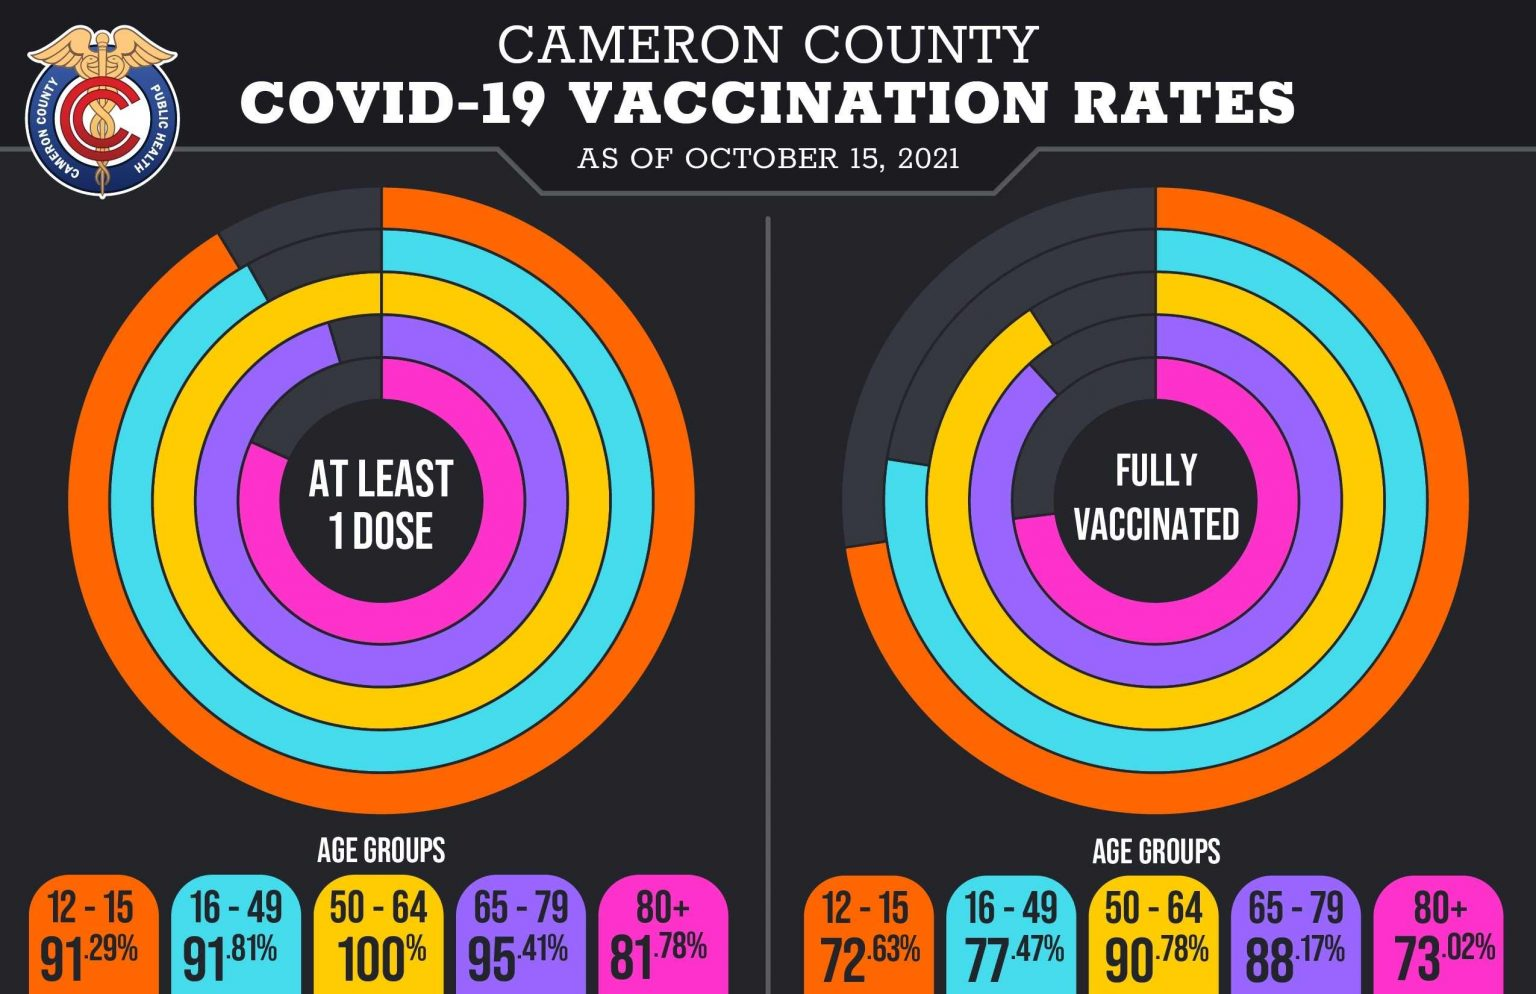 cameron county vaccination rates OCTOBER 15 2021